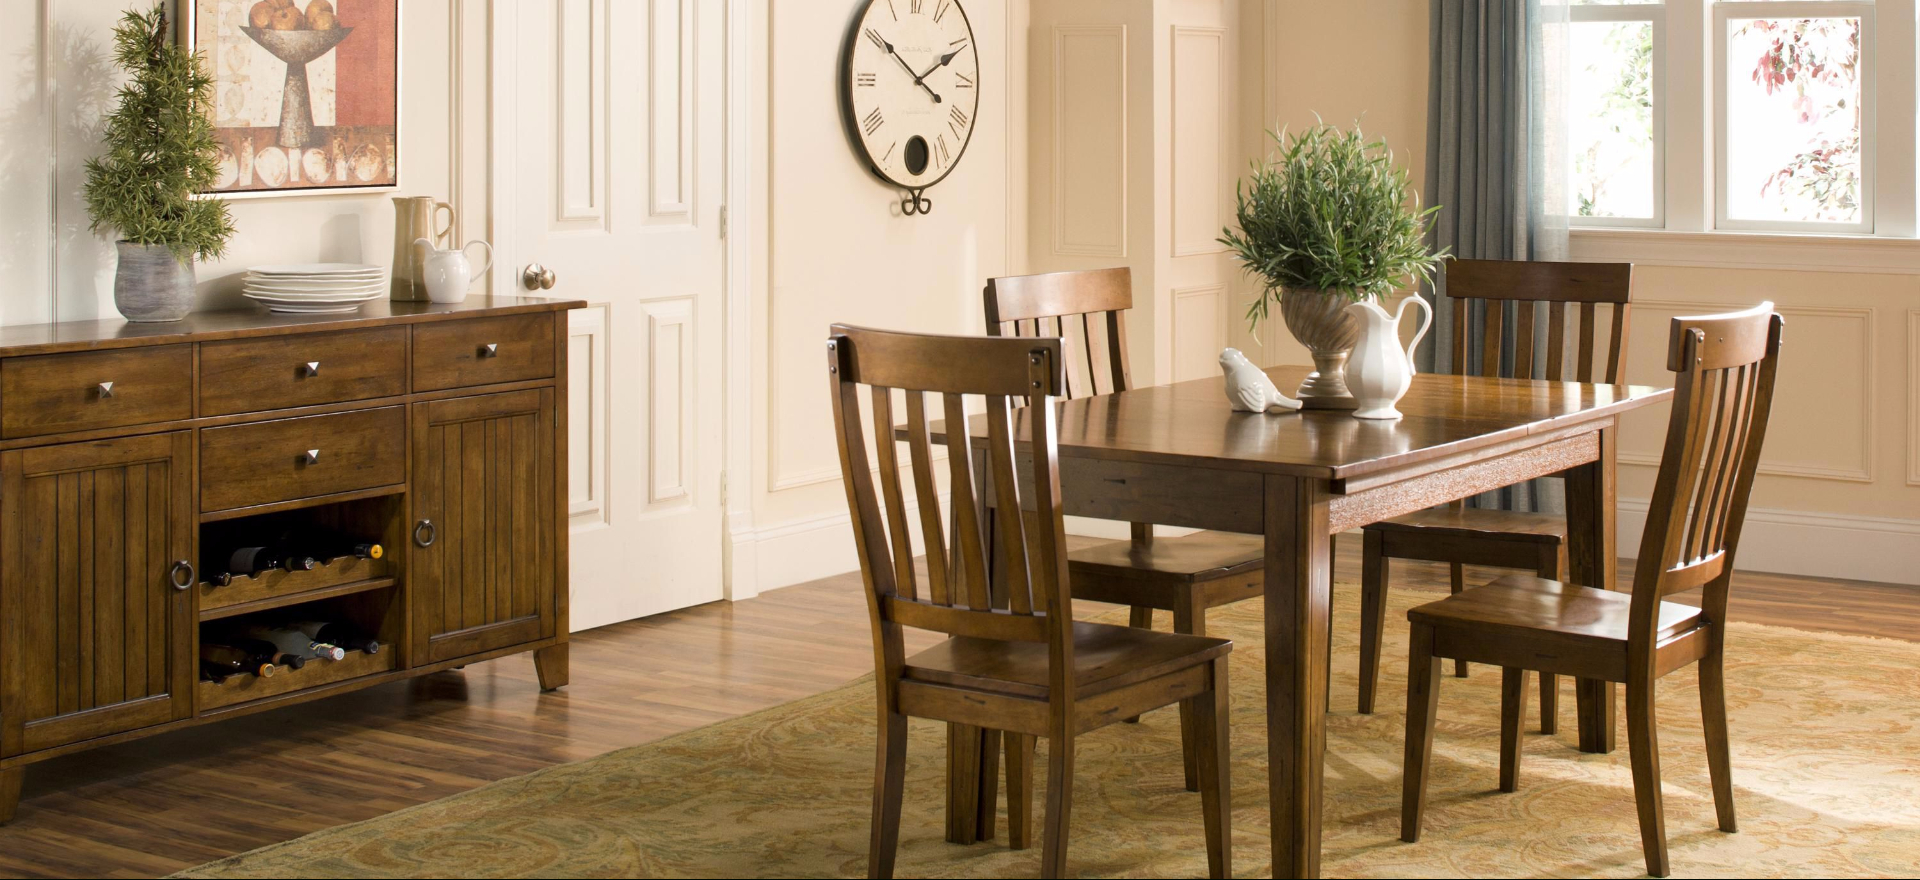 Small Dining Tables With Rustic Pine Ash Brown Finish Within Most Up To Date How To Choose The Right Dining Table For Your Home – The New (View 27 of 30)